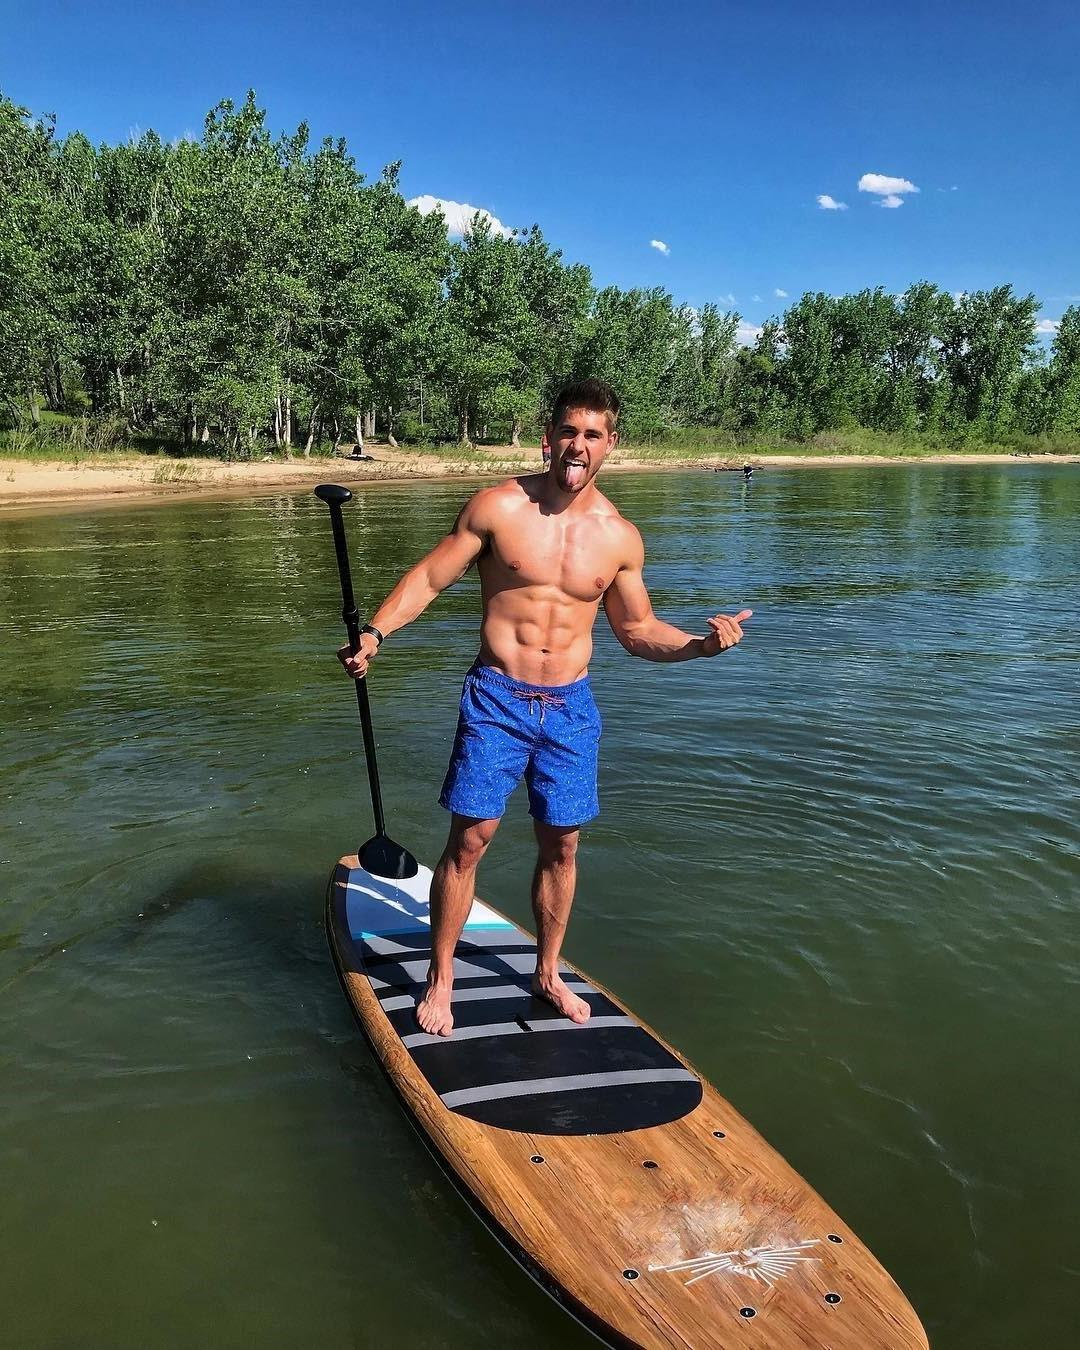 hot-shirtless-fit-young-surfer-dude-abs-pecs-tongue-out-hunk